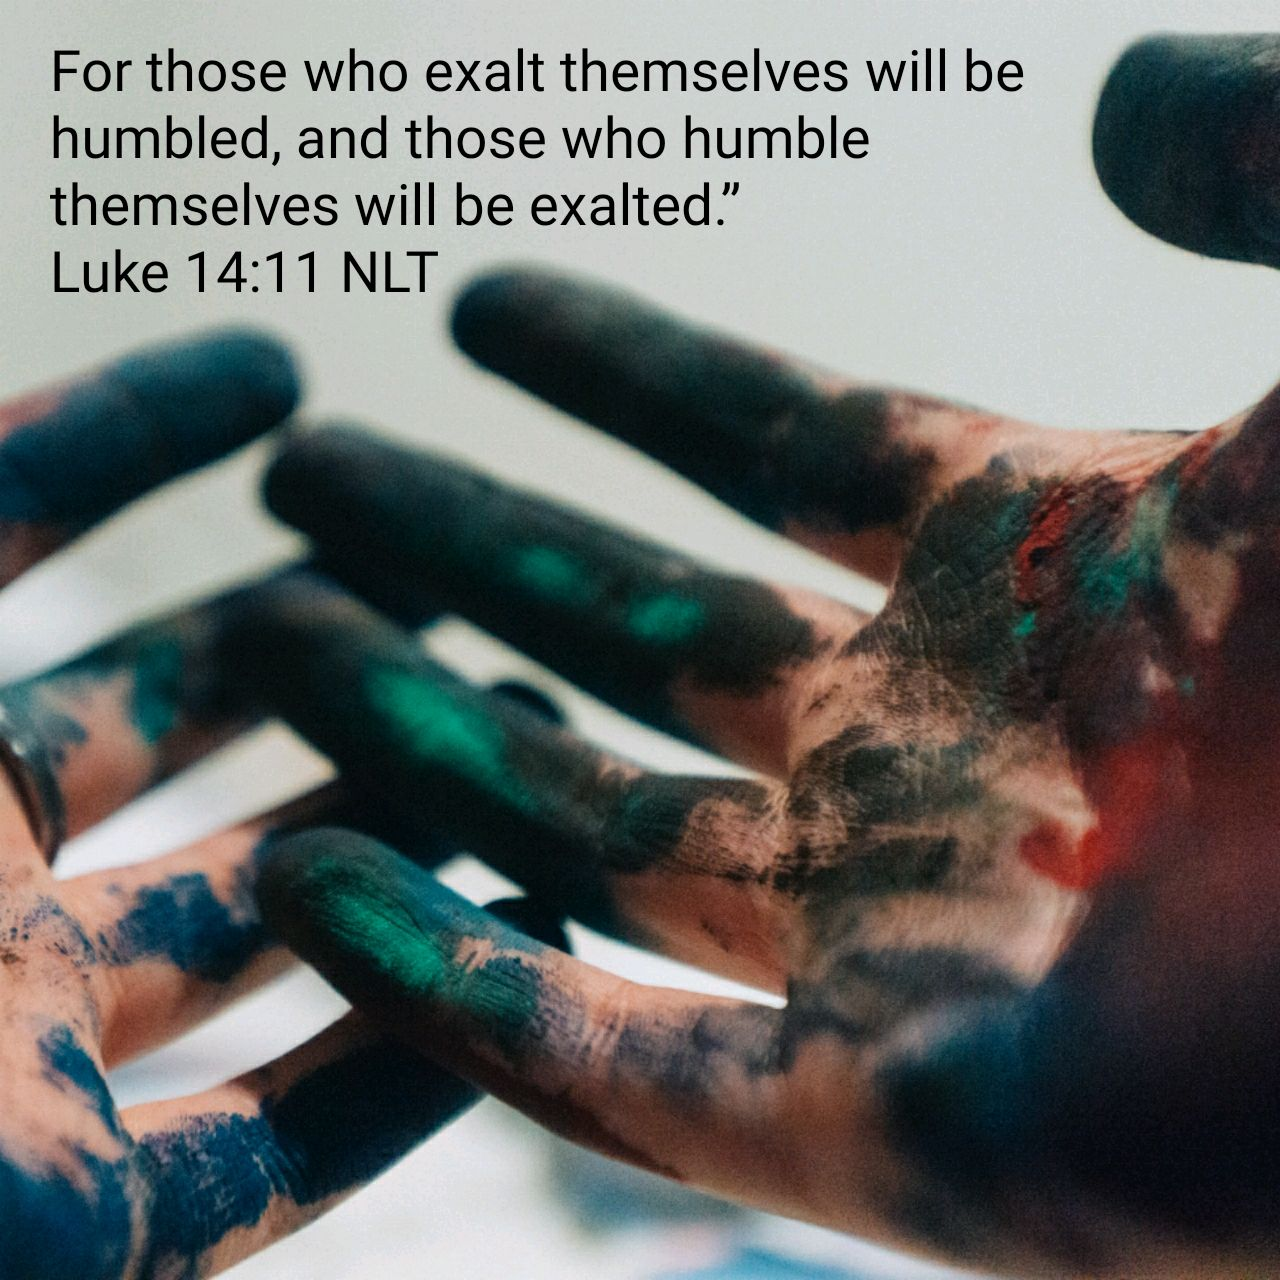 """For those who exalt themselves will be humbled, and those who humble themselves will be exalted."" - Luke 14:11 NLT"